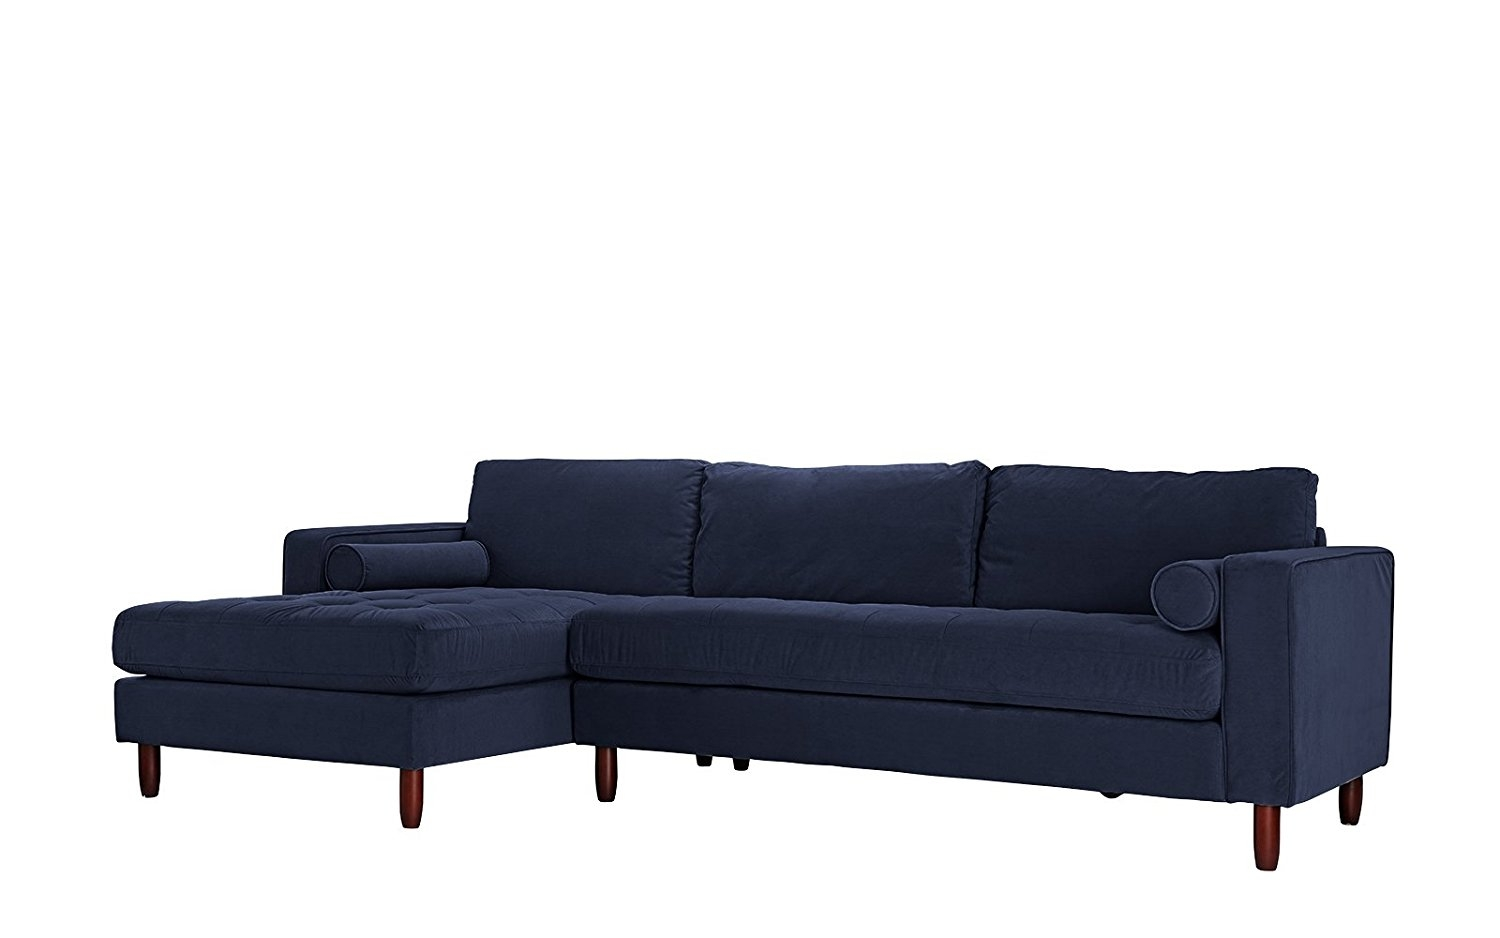 Mid Century Modern Tufted Velvet Sectional Sofa, L Shape Couch With Extra  Wide Chaise Lounge (Navy)   Walmart.com